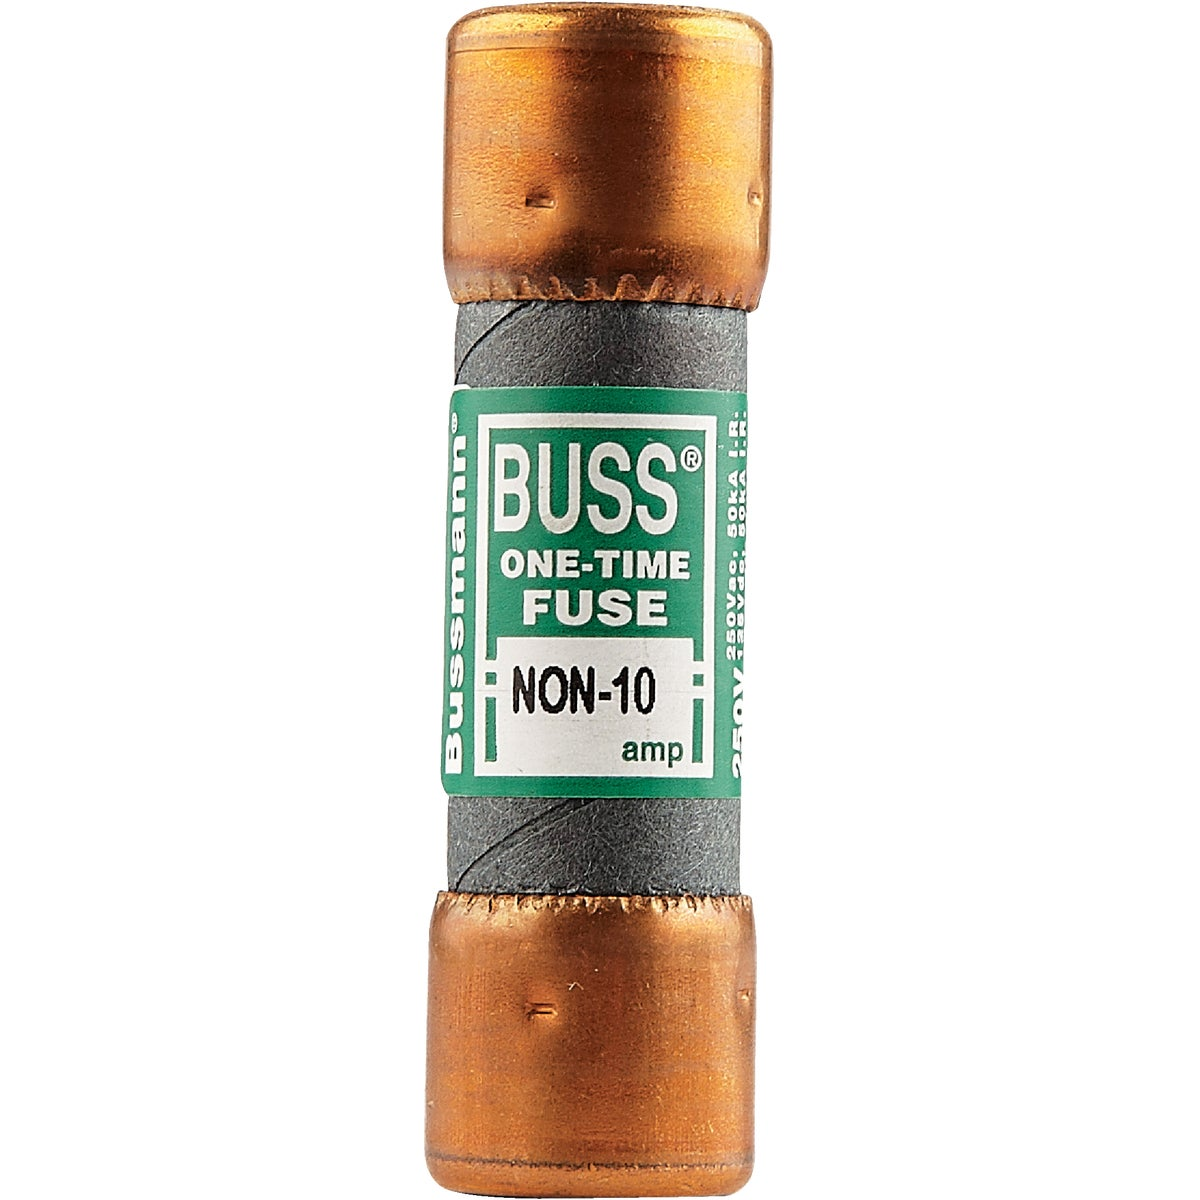 30A NON CARTRIDGE FUSE - NON-30 by Bussmann Cooper